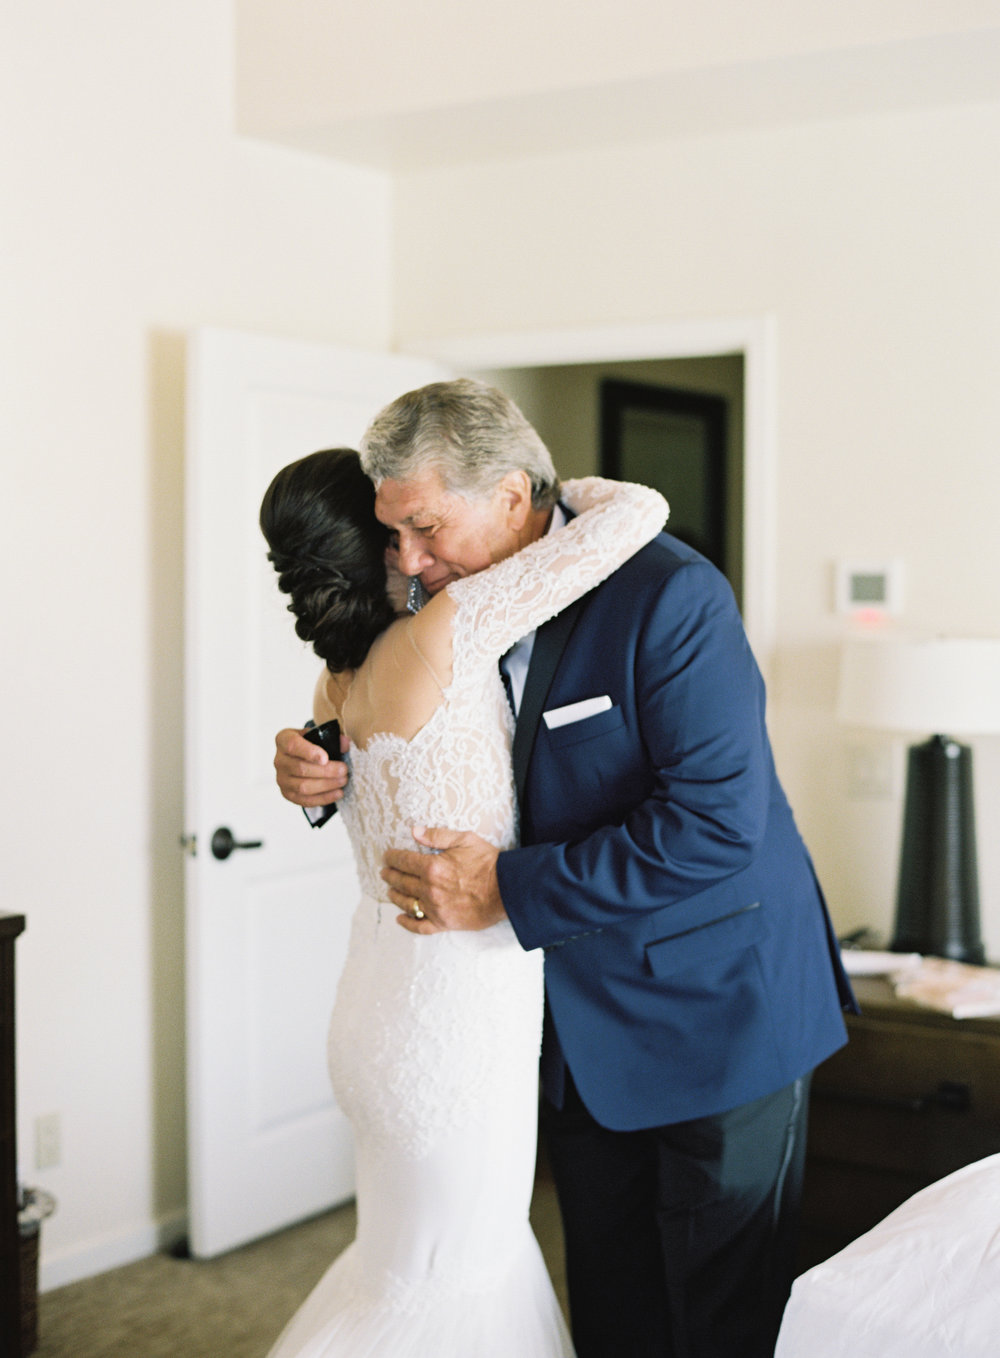 Meghan Mehan Photography - Carmel Valley Ranch Wedding 057.jpg